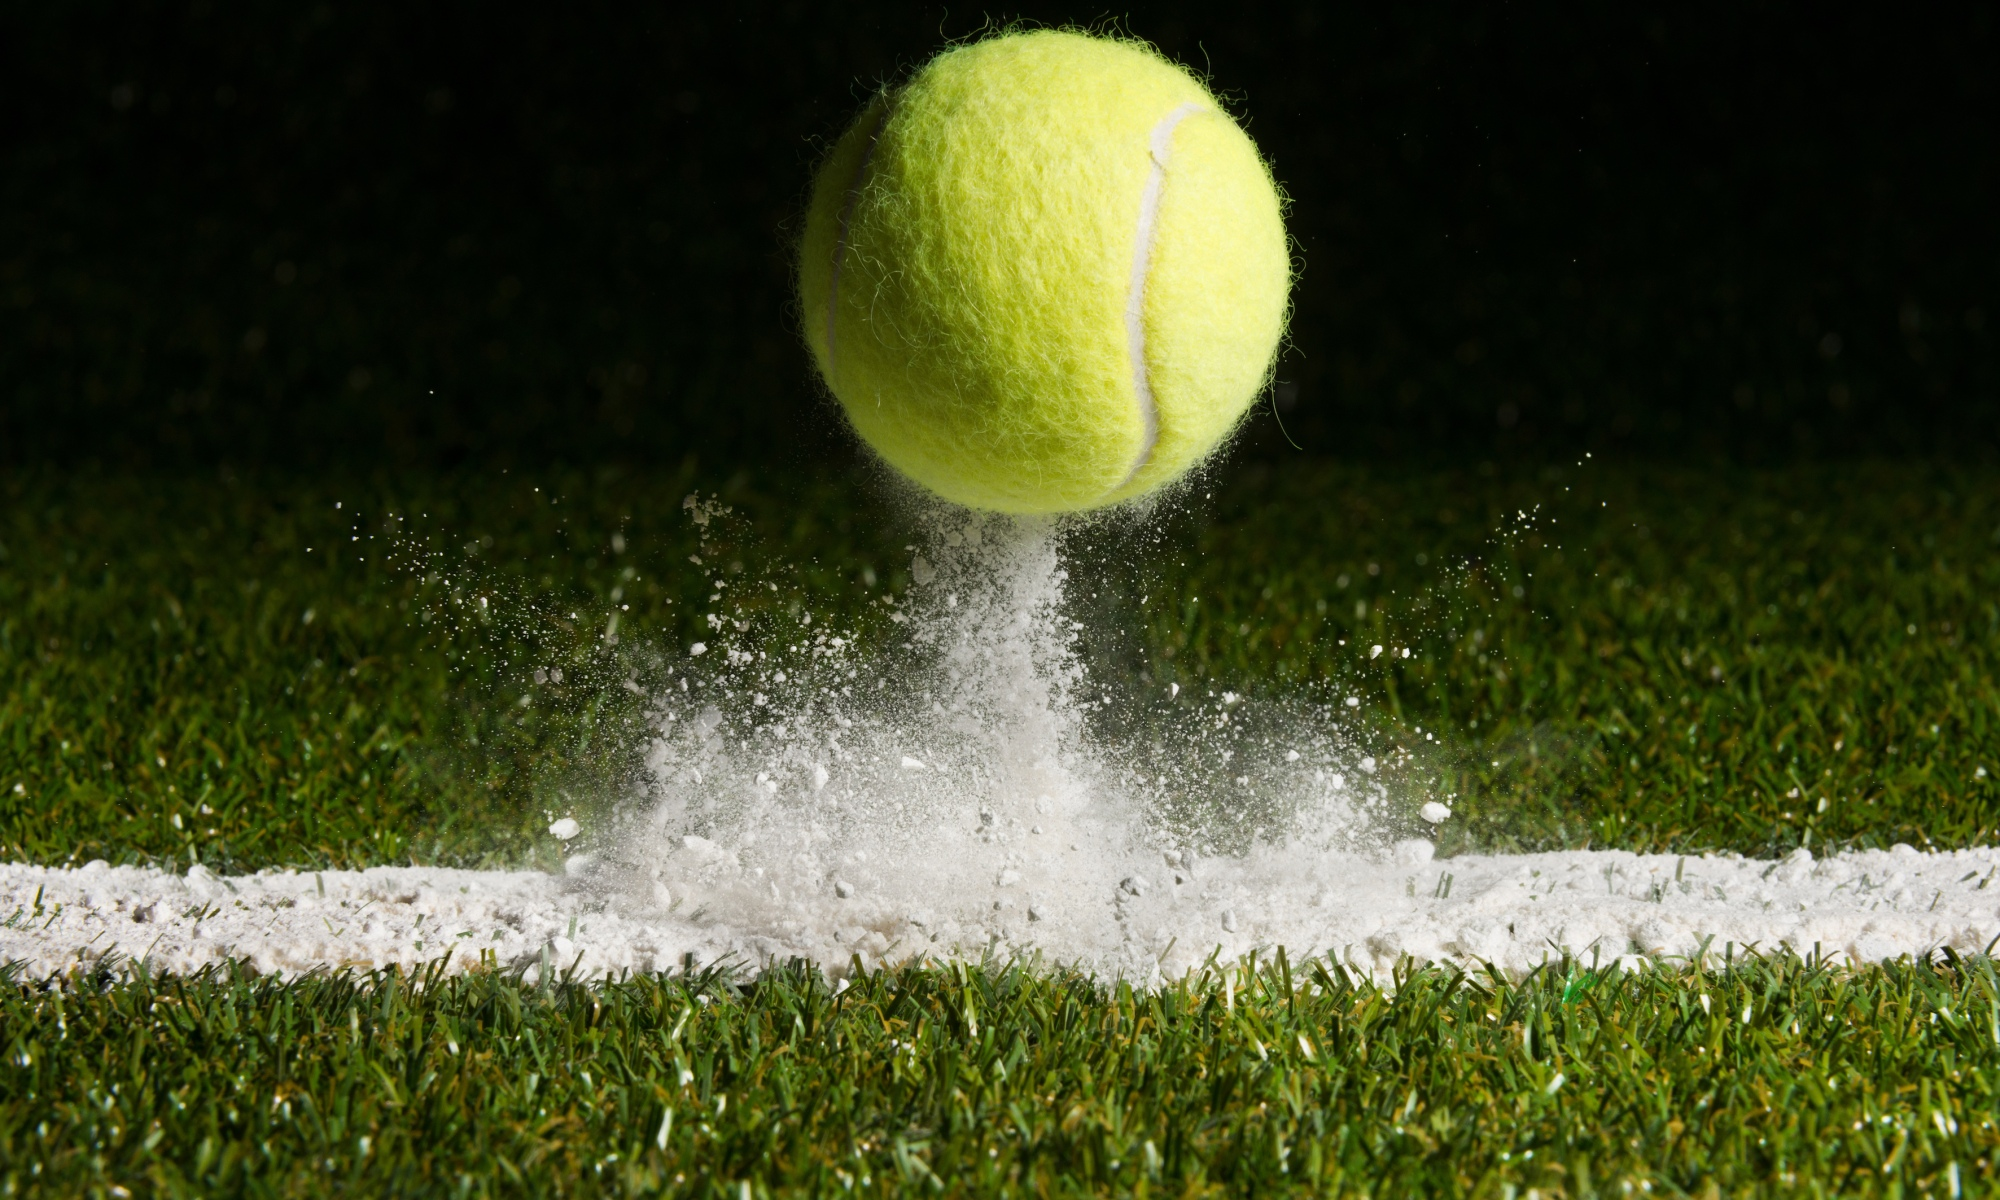 photo of tennis ball bouncing on a grass court